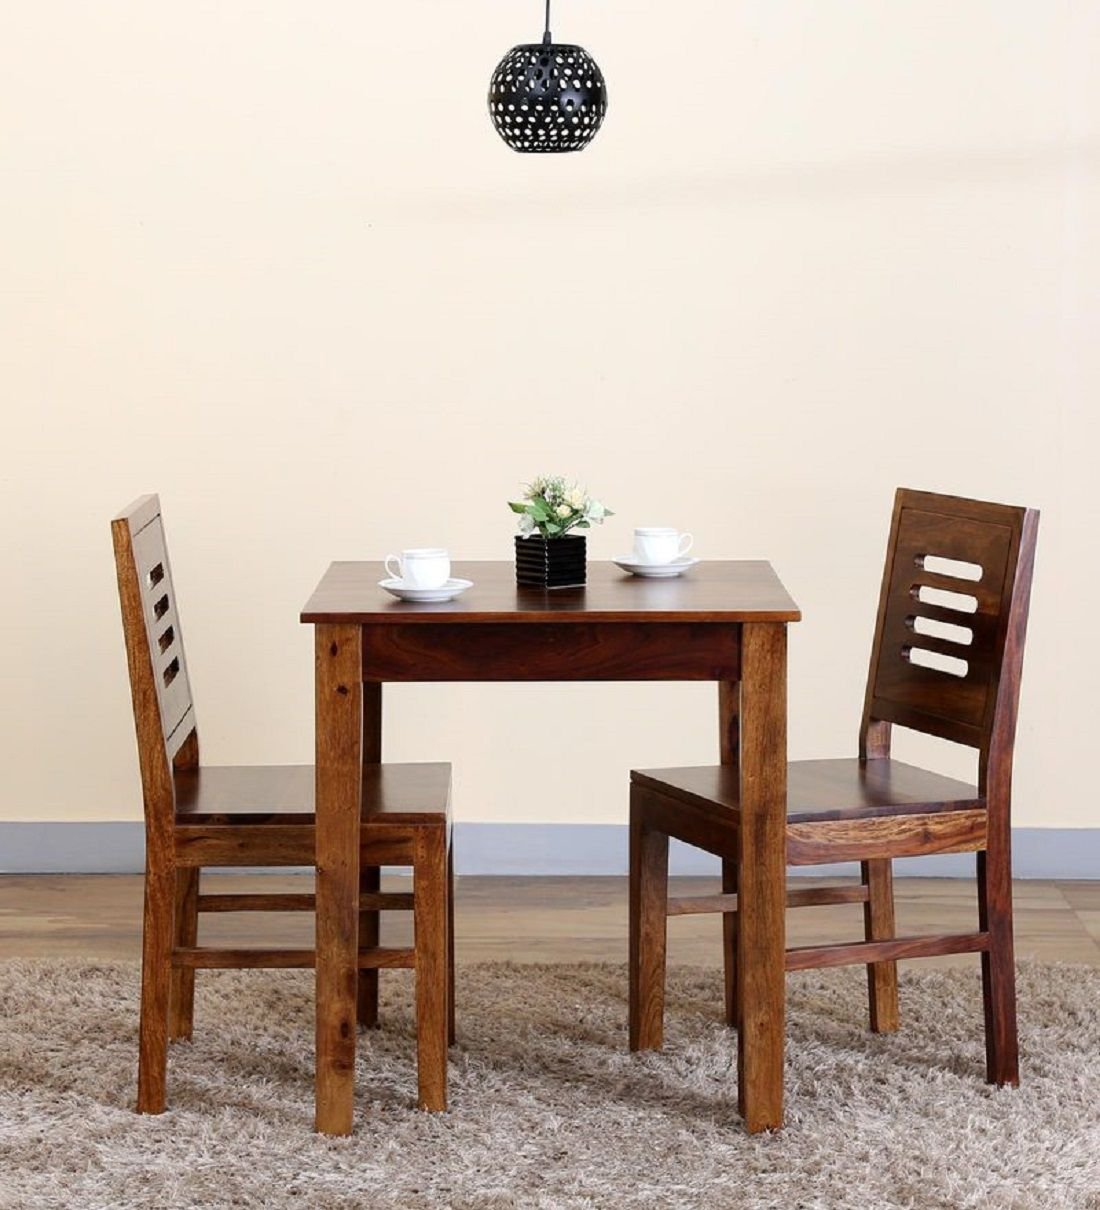 Two Seat Dining Set: Ethnic India Art 2 Seater Dining Set/table In Sheesham